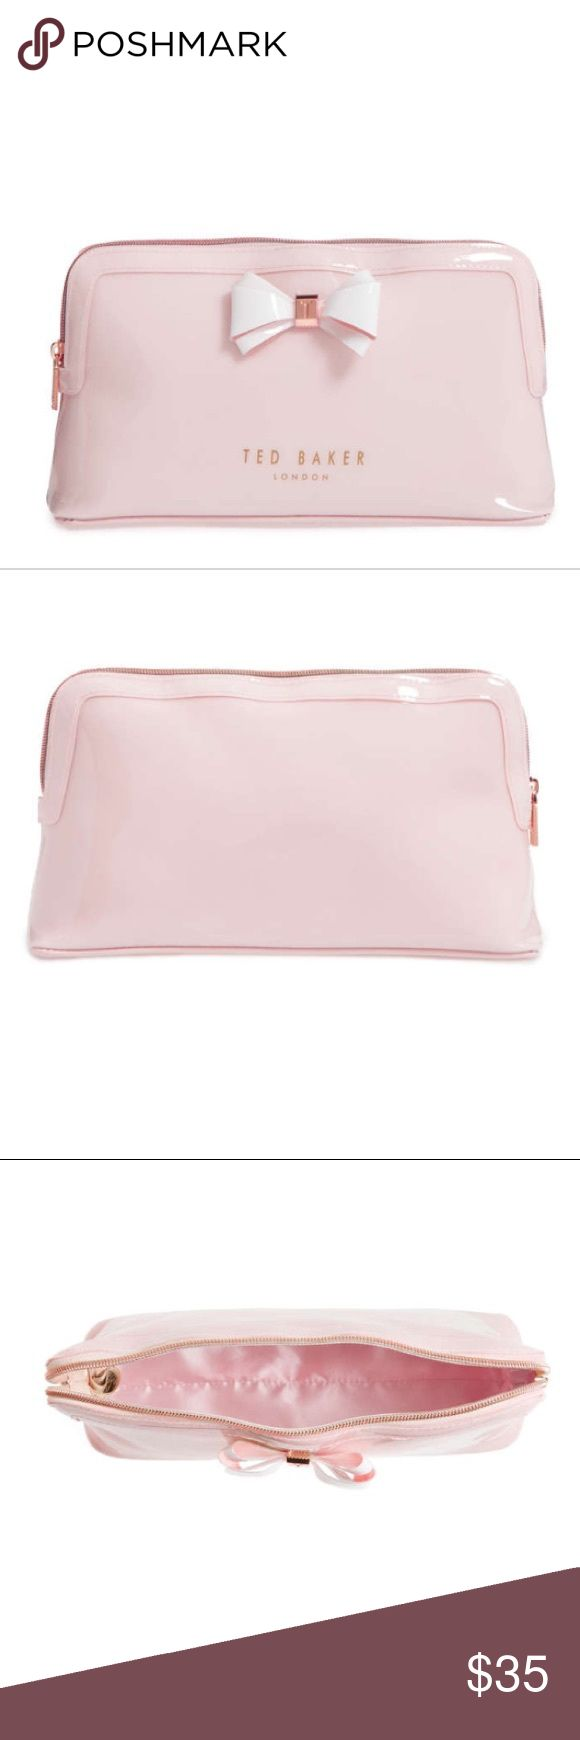 Ted Baker Abbie Large Cosmetic Case Brand new Ted Baker London Bags Cosmetic Bags & Cases